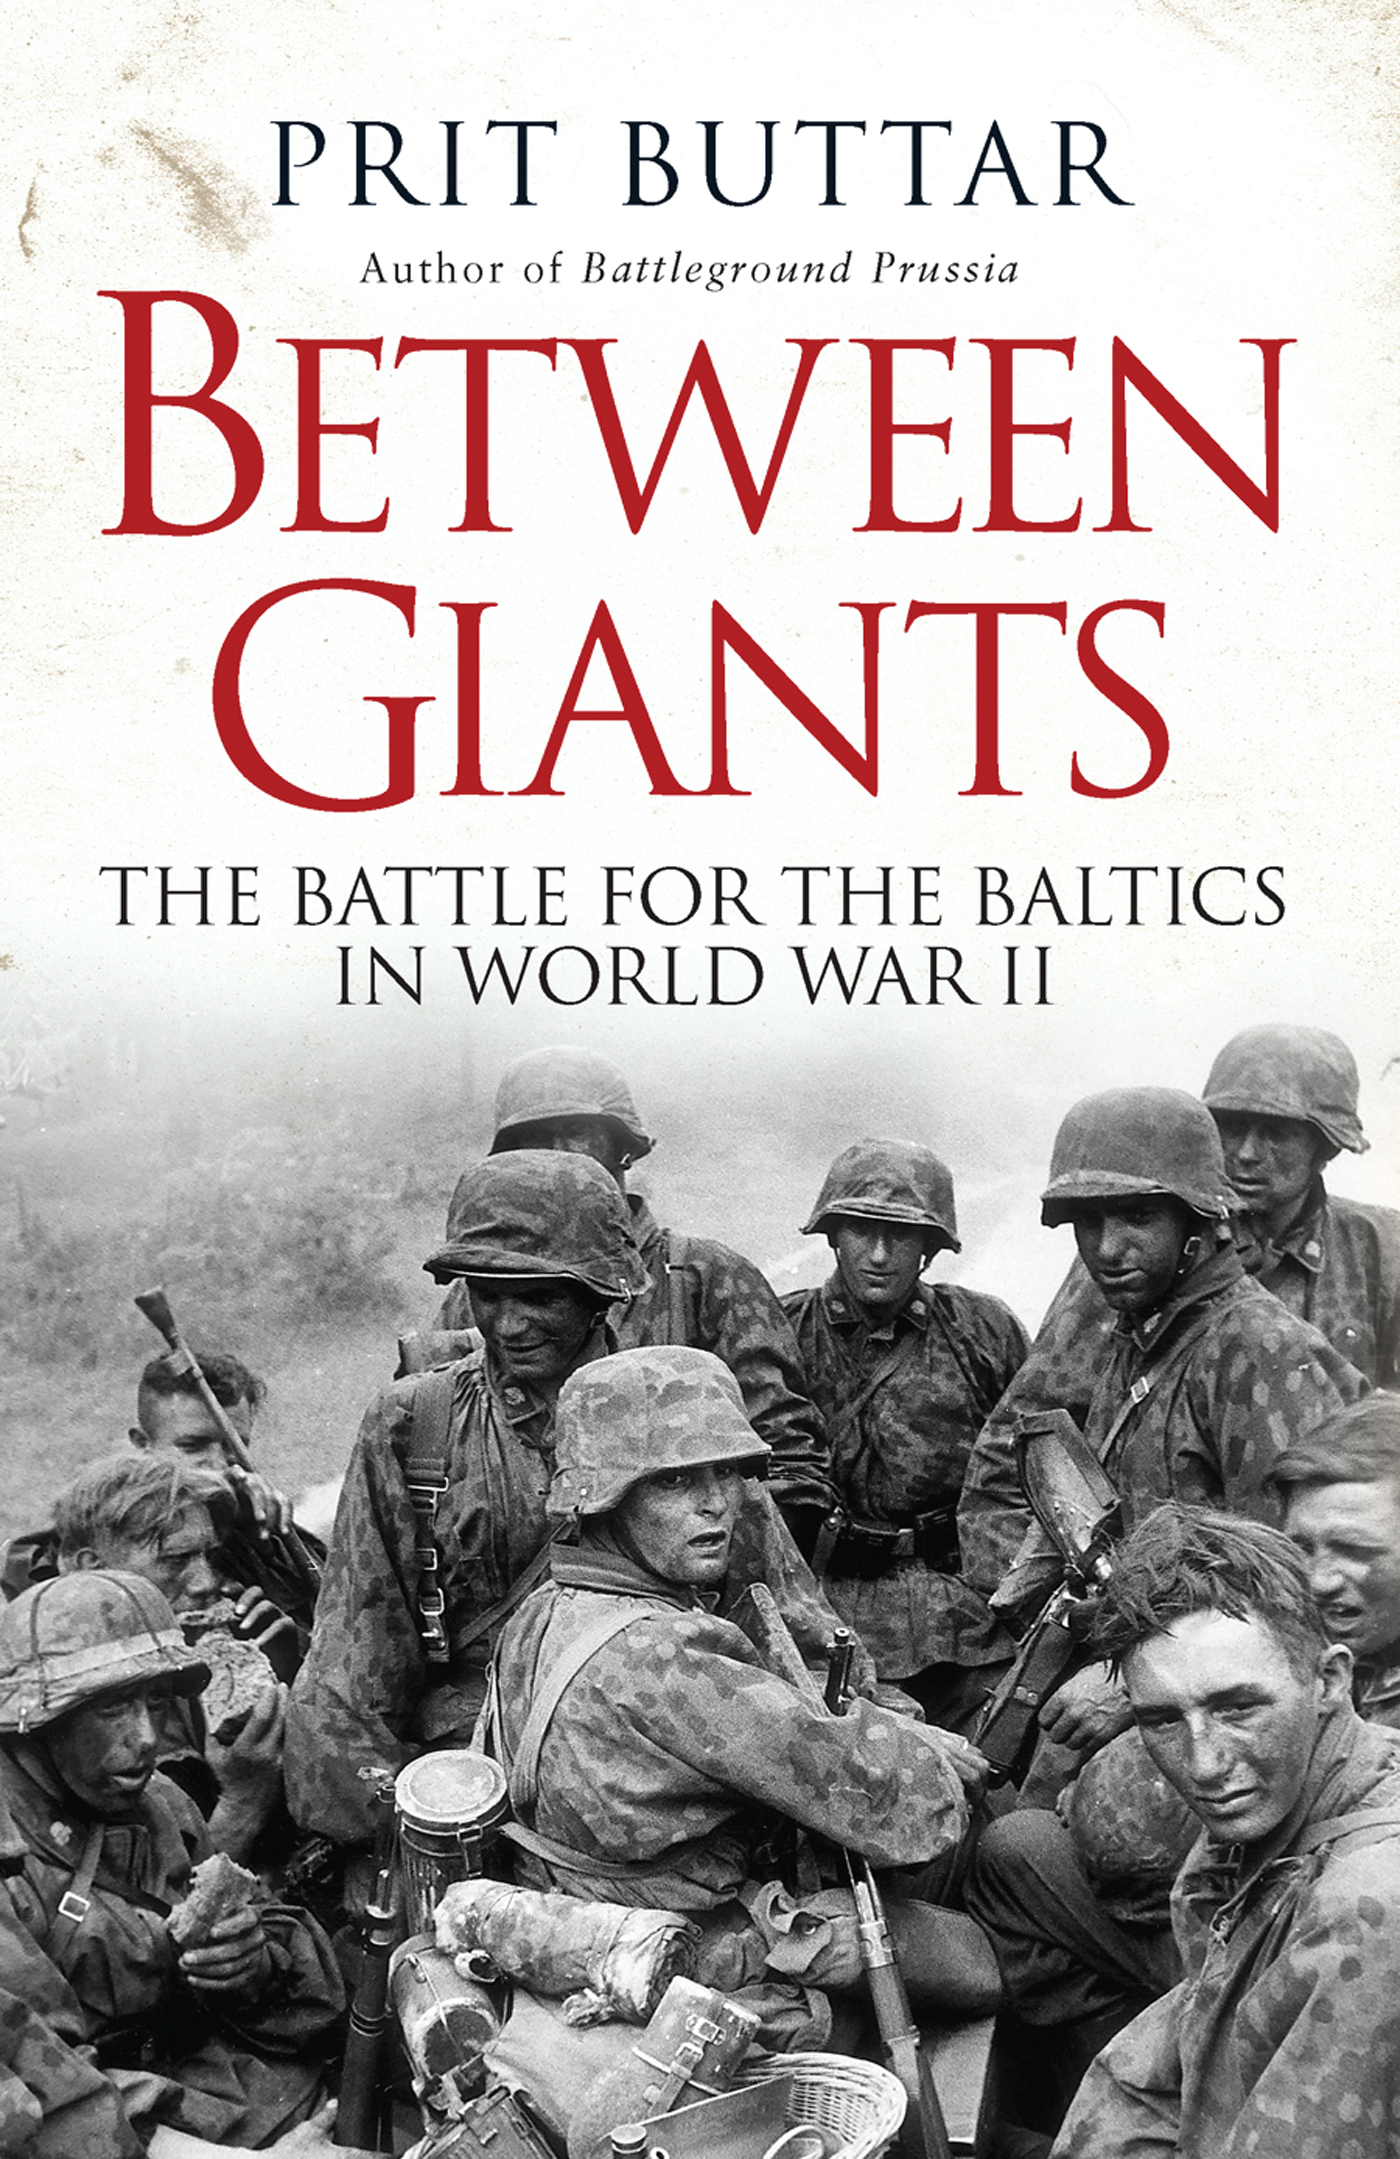 Between Giants: The Battle for the Baltics in World War II